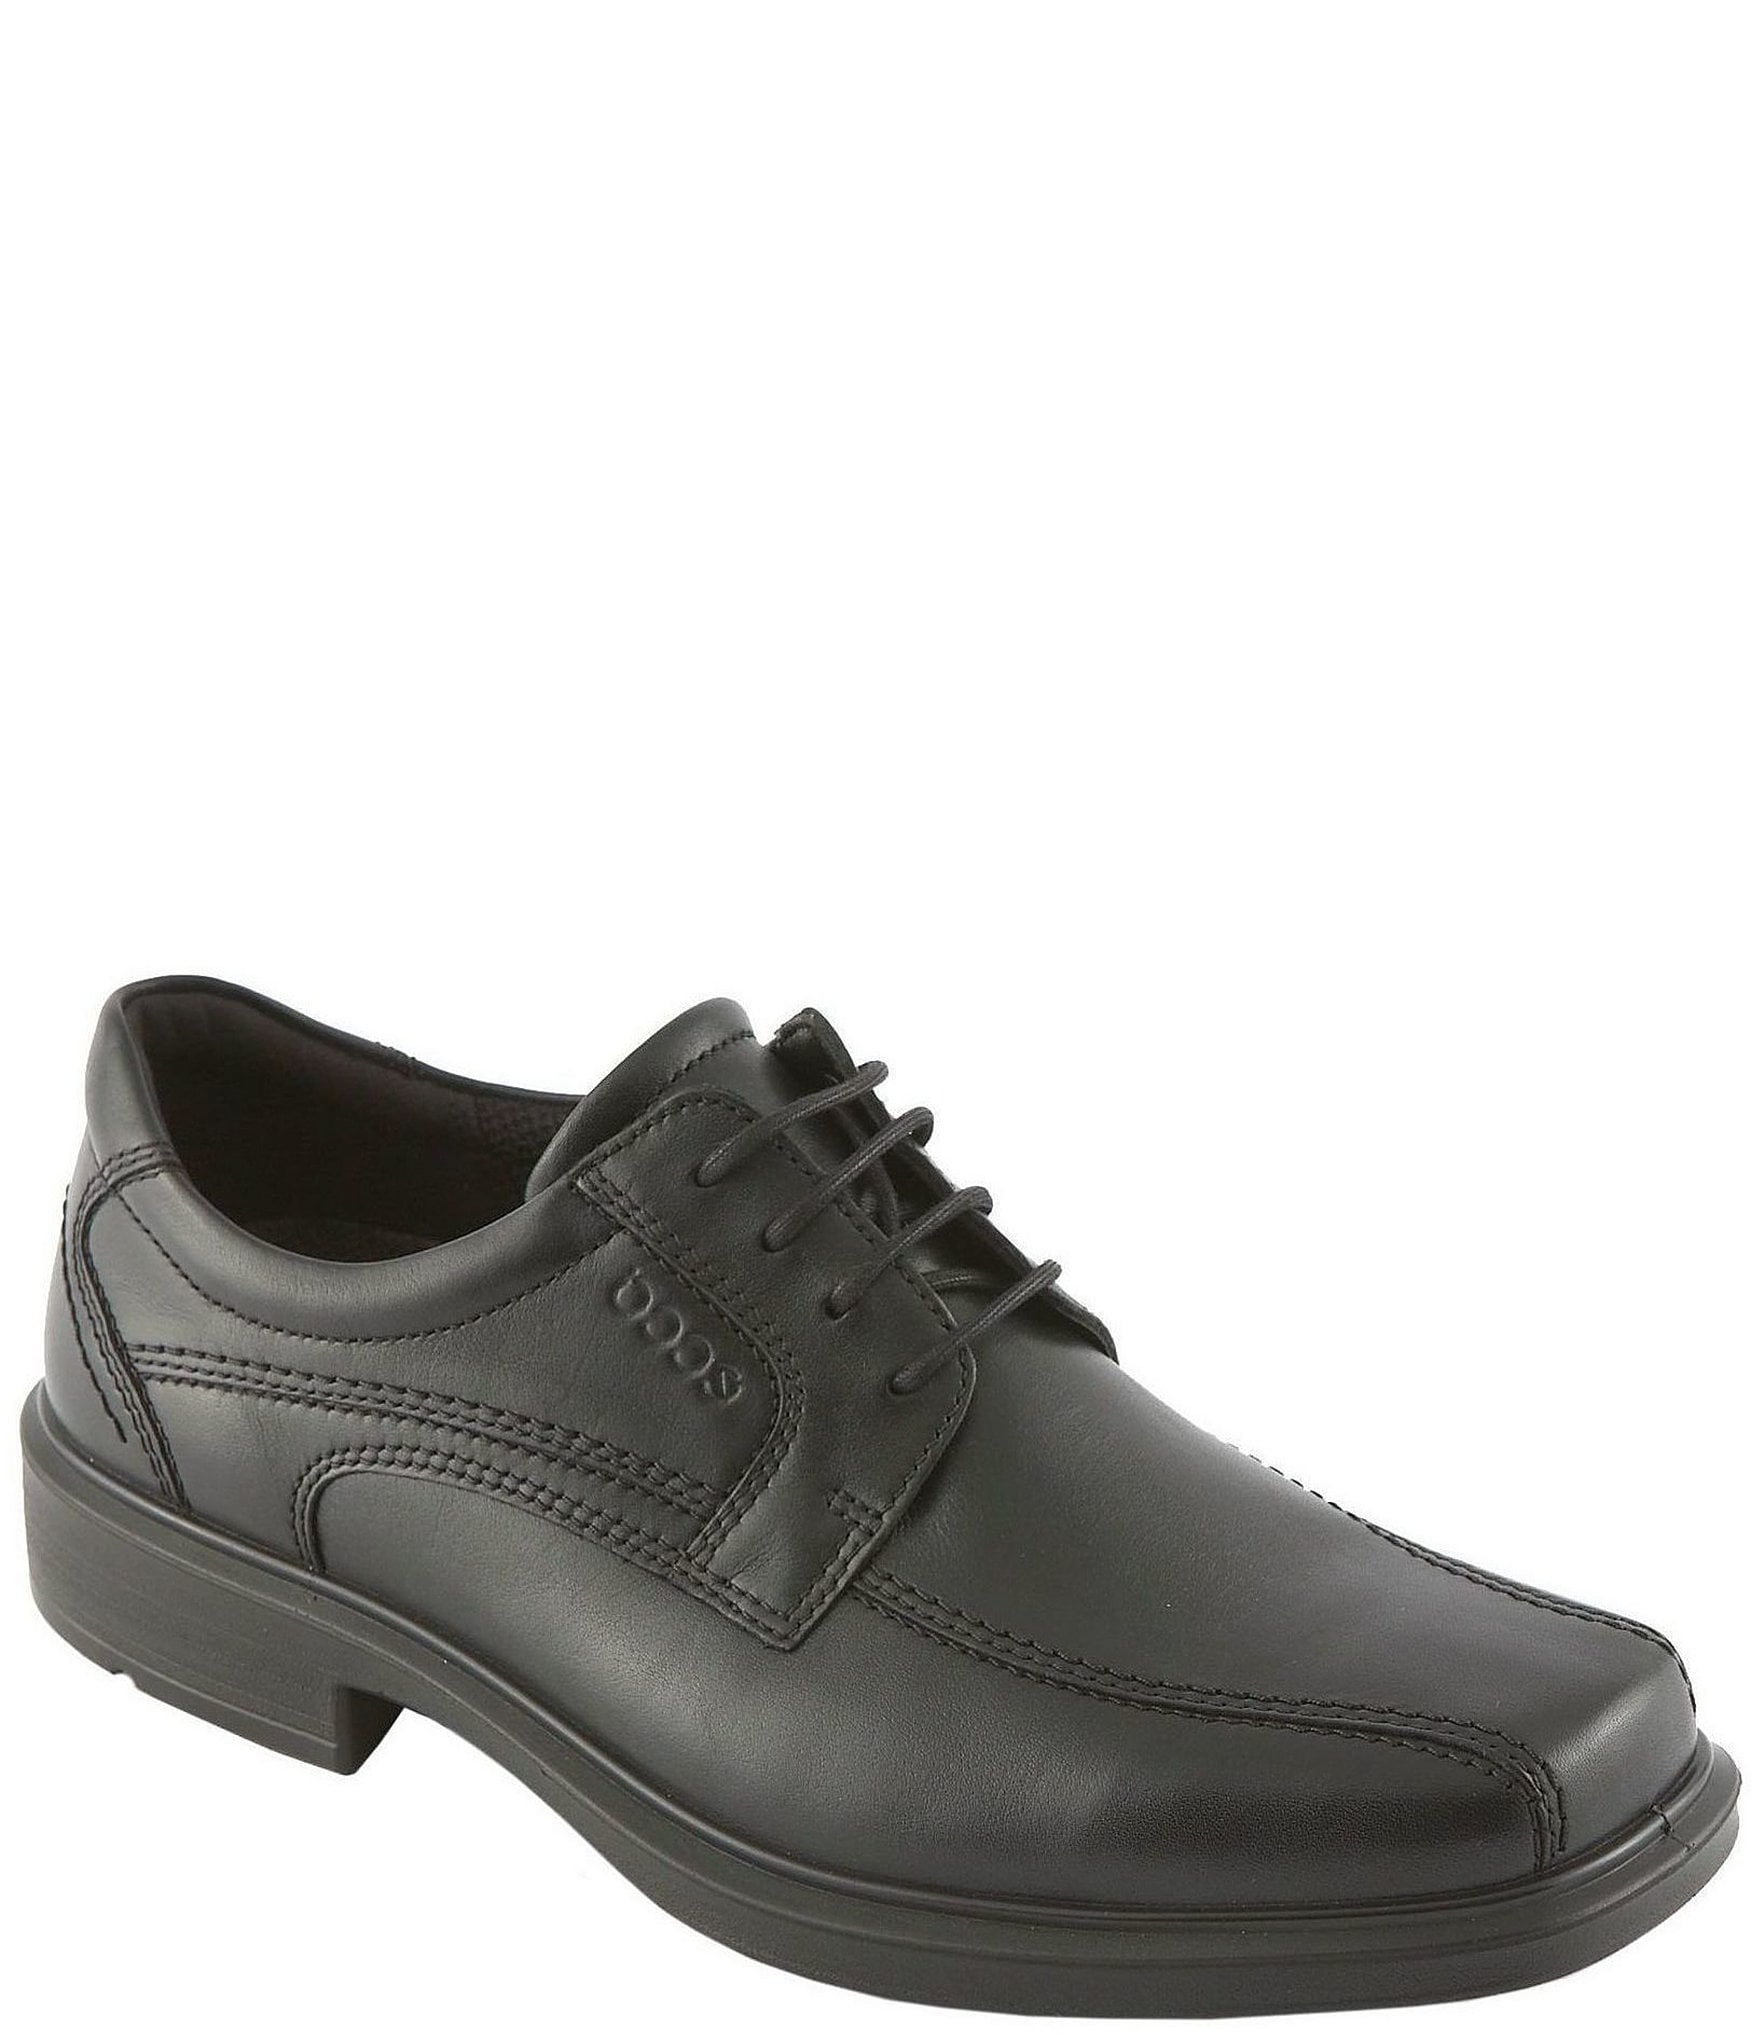 cce4c560f5d21 Buy michael kors mens dress shoes   OFF77% Discounted